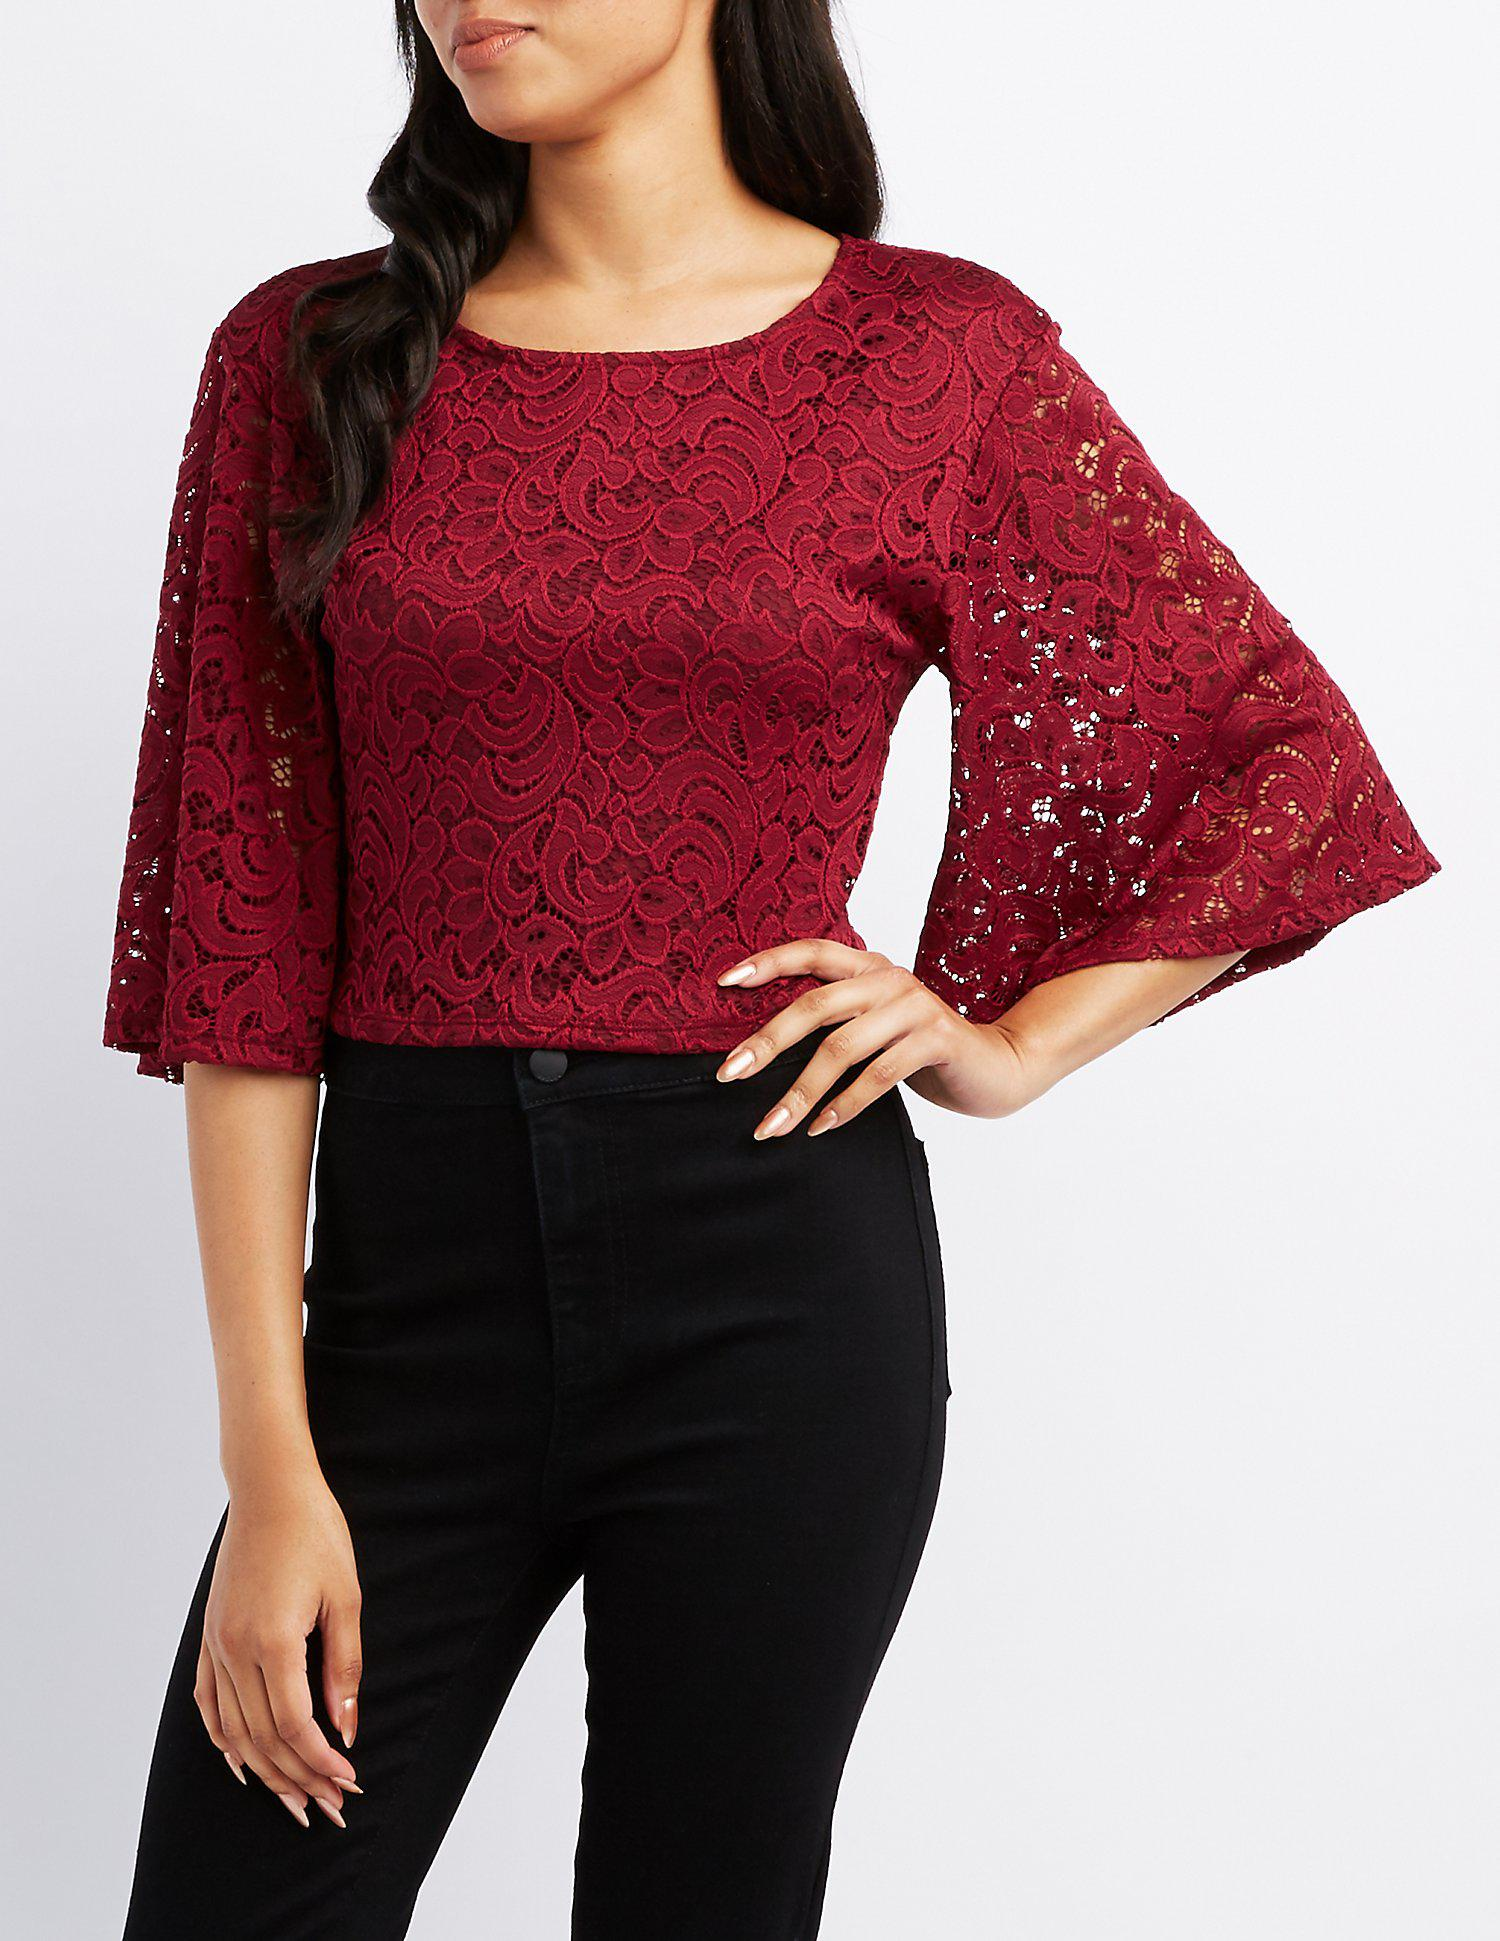 64d068b1c612fa Lyst - Charlotte Russe Lace Flutter Sleeve Crop Top in Red